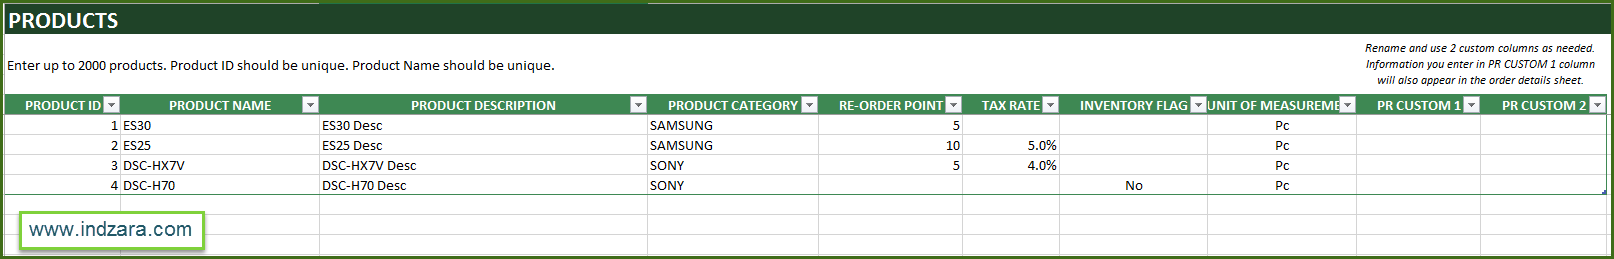 Retail Inventory and Sales Manager - Excel Template - Products